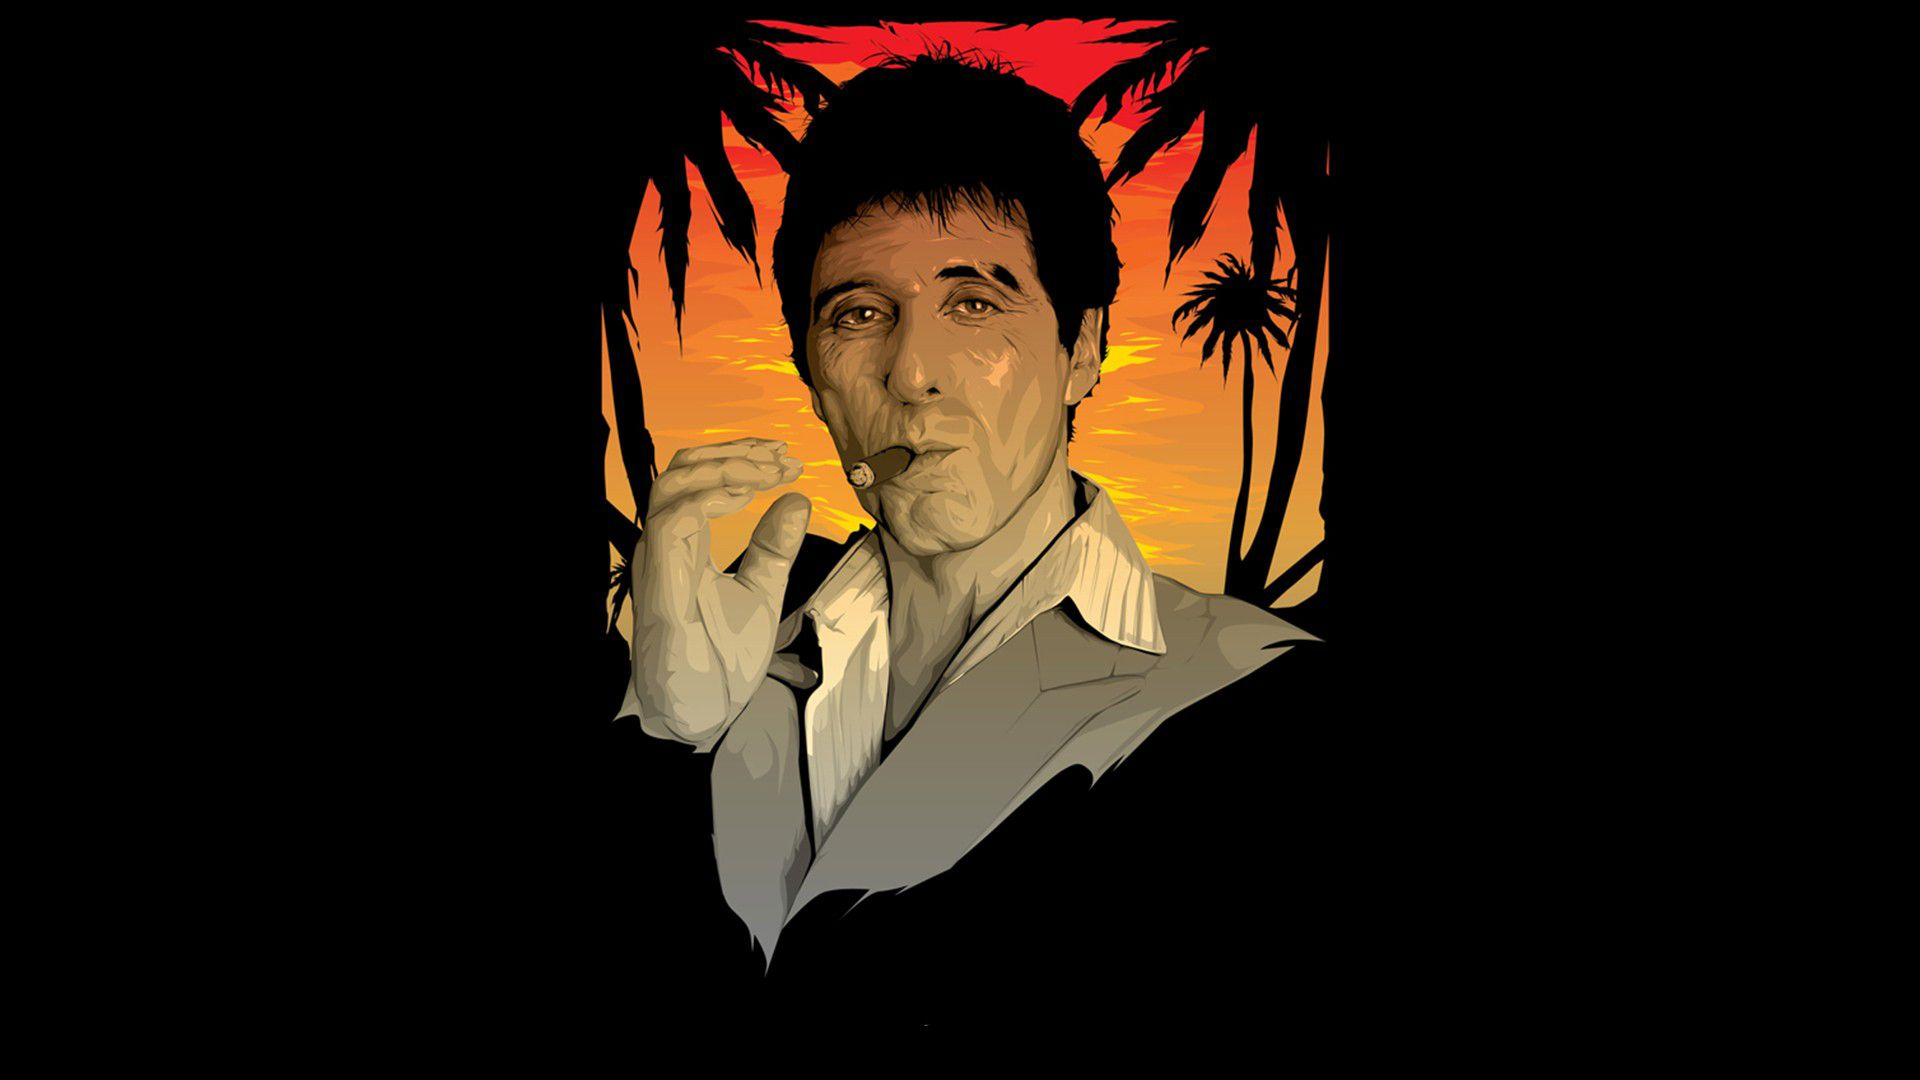 Scarface Full Hd Wallpaper 1920x1080 Fondos De Escritorio Frases De Scarface Al Pacino